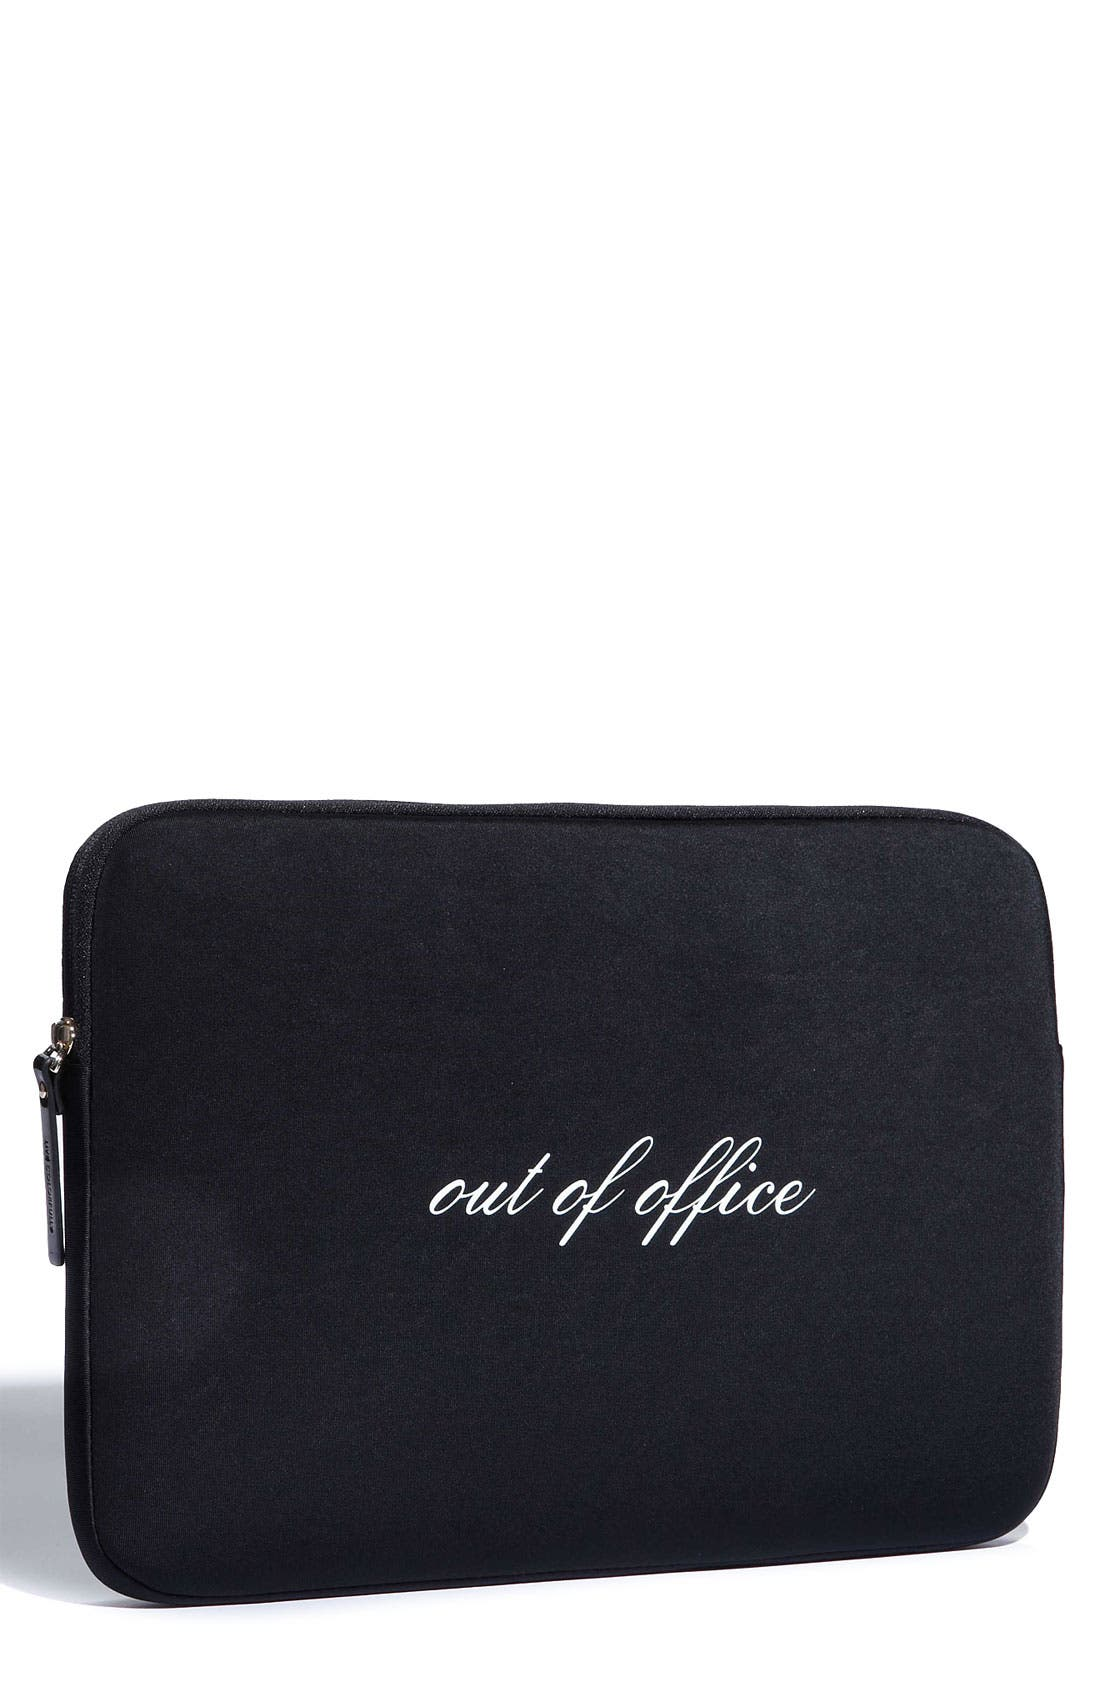 Alternate Image 1 Selected - kate spade new york 'out of office' laptop sleeve (13 Inch)